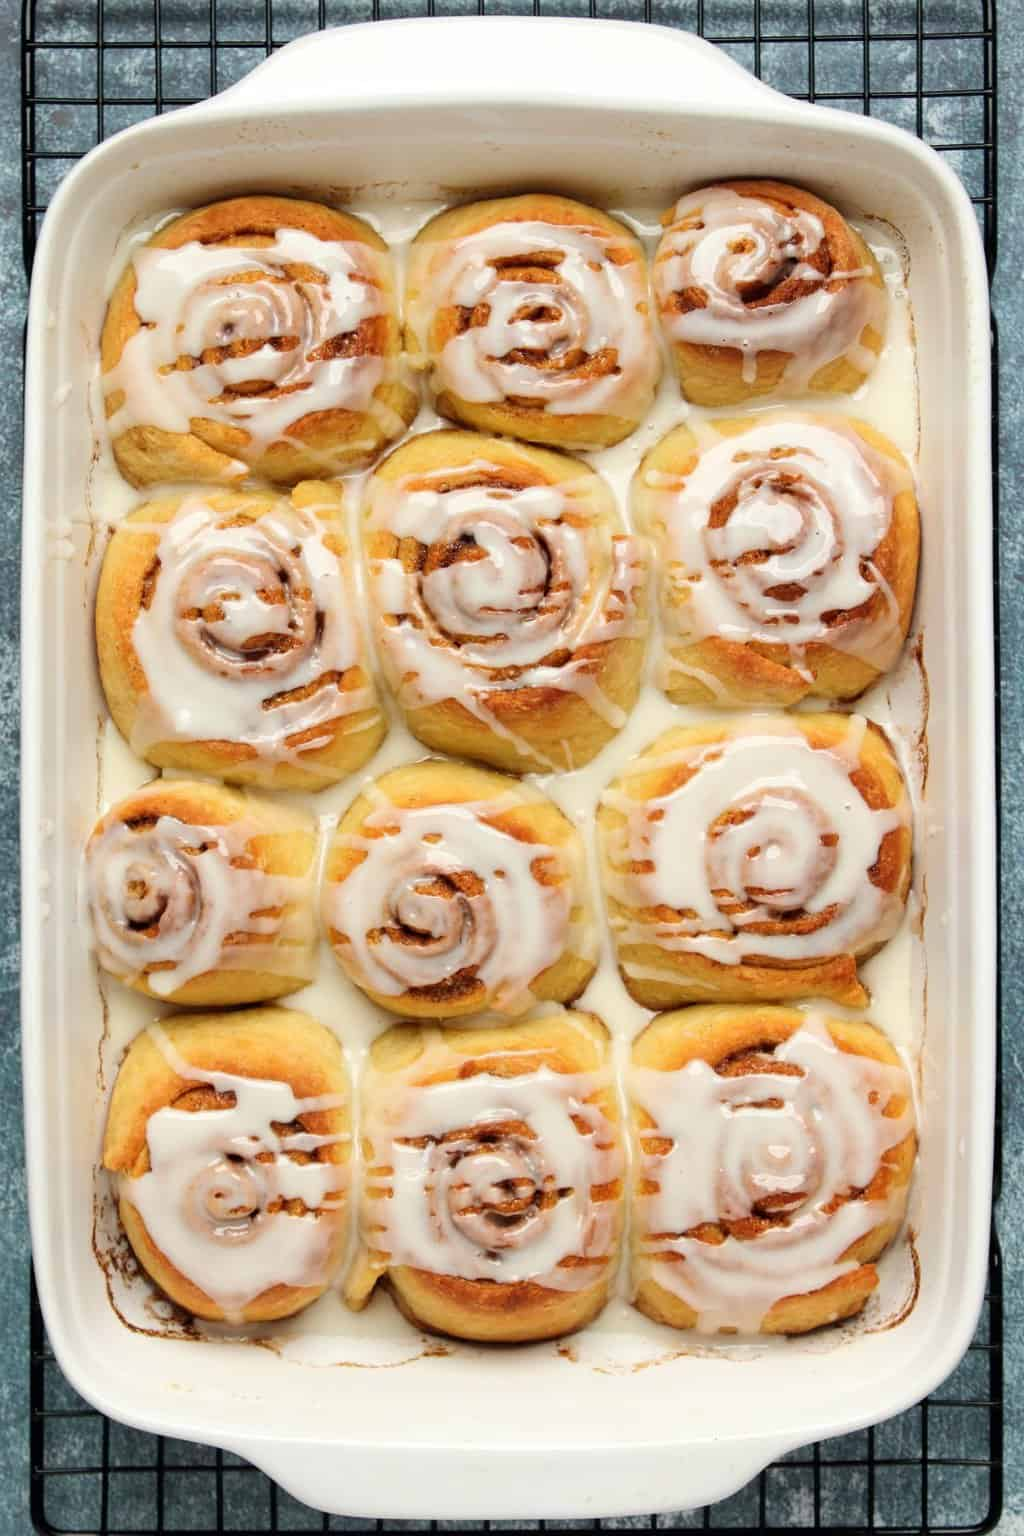 Vegan cinnamon rolls topped with frosting in a white baking dish.